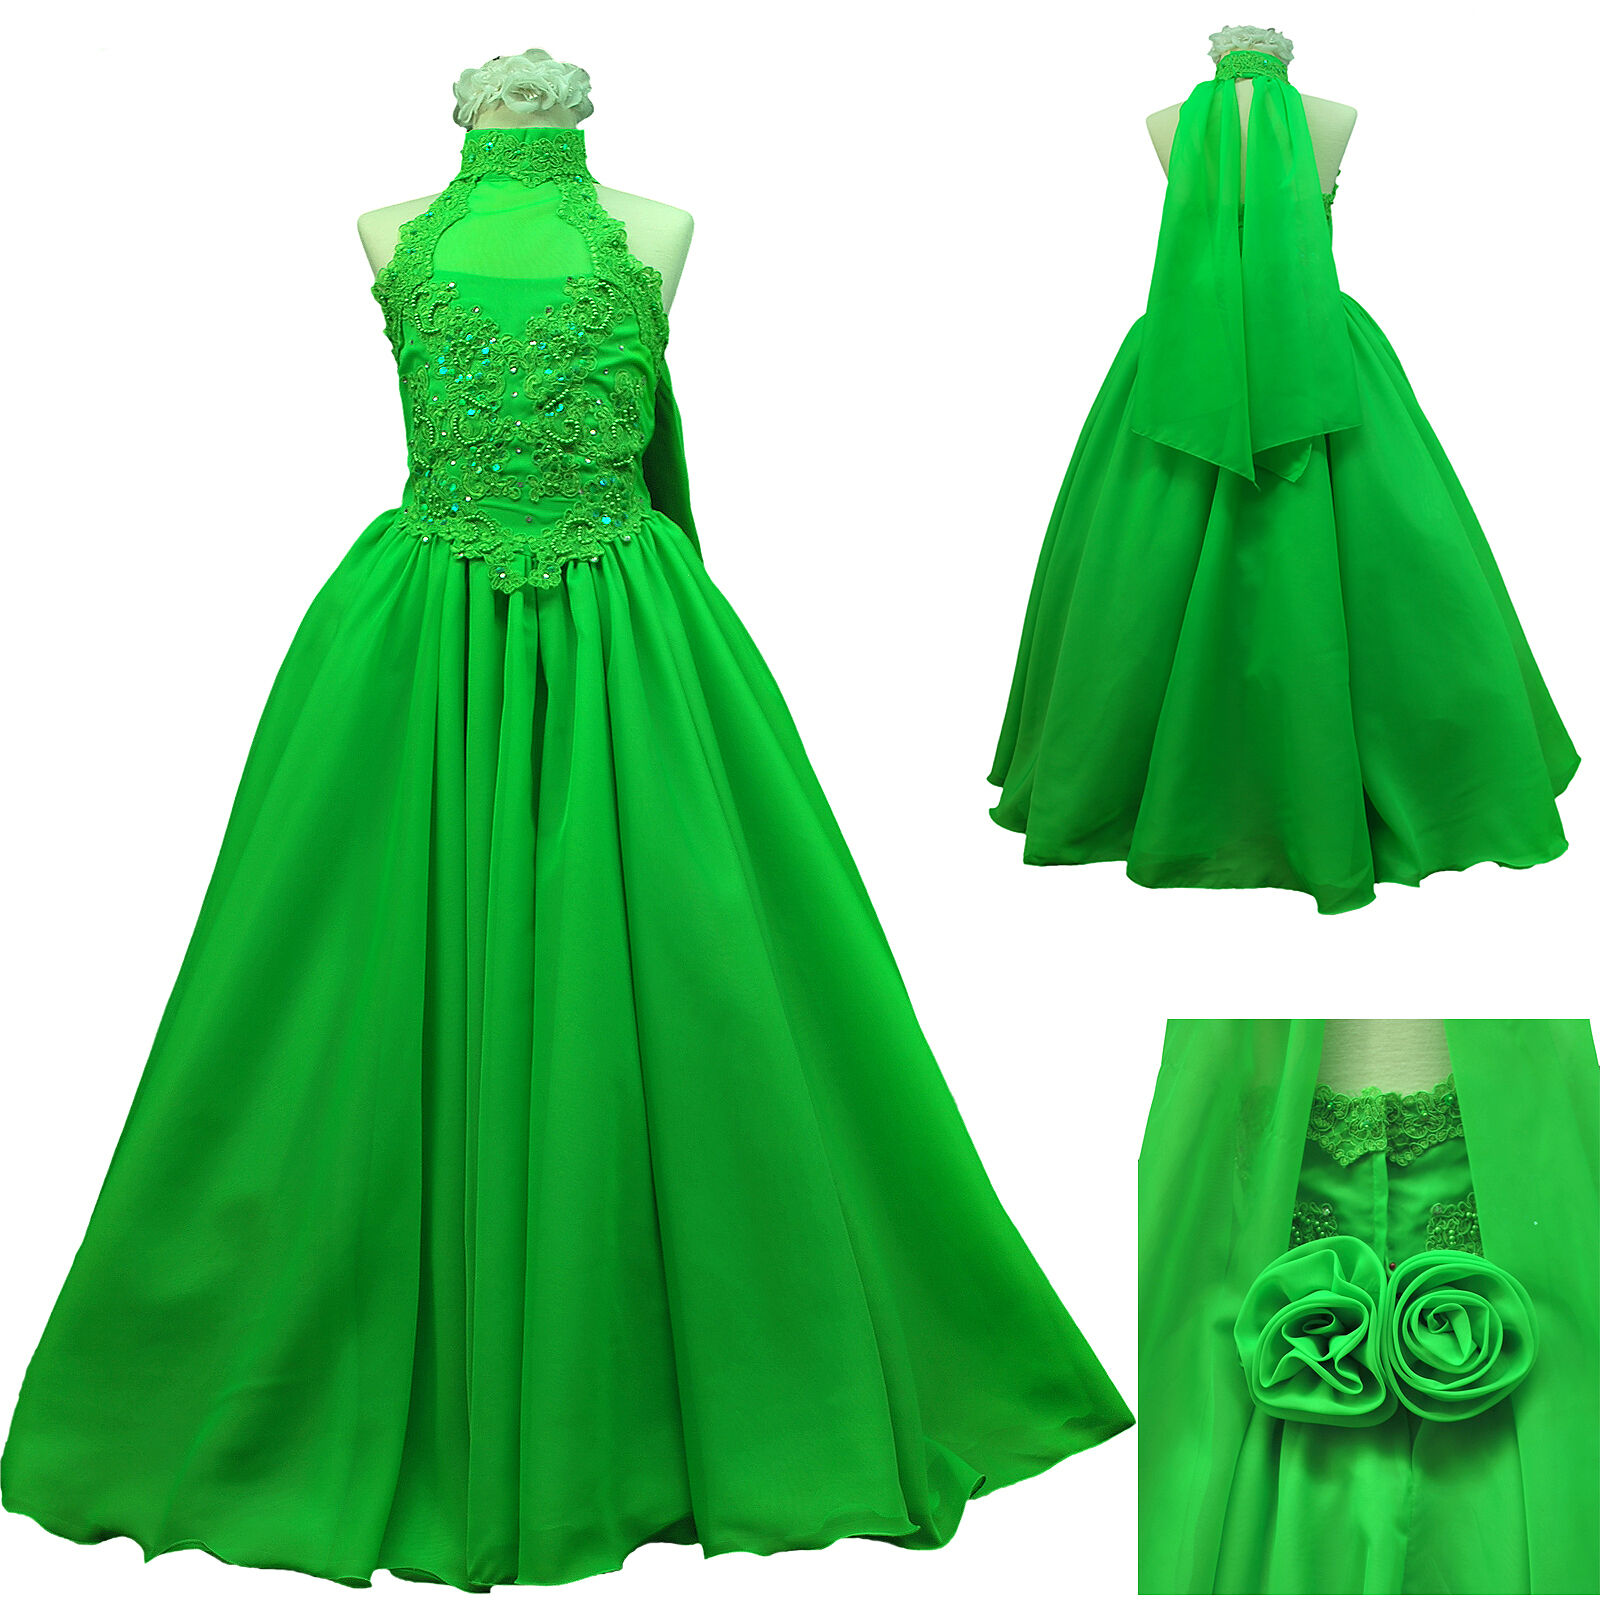 New Green Pageant Wedding Recital Formal Party Dress Teen Girl size:7 8 10 12 14